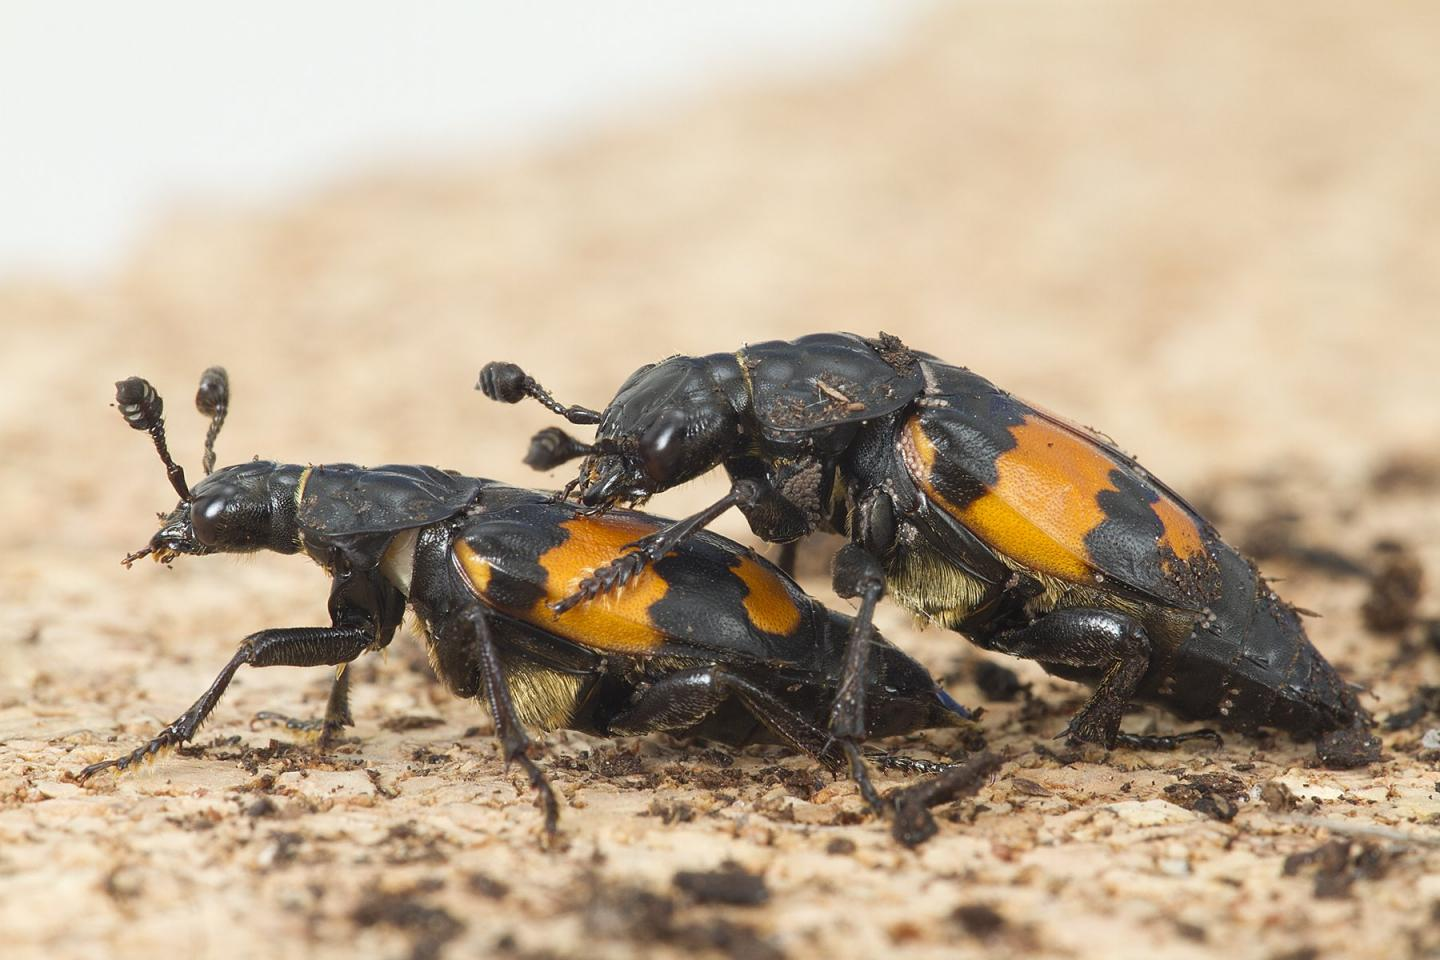 Male beetles that have more sex are over-compensating